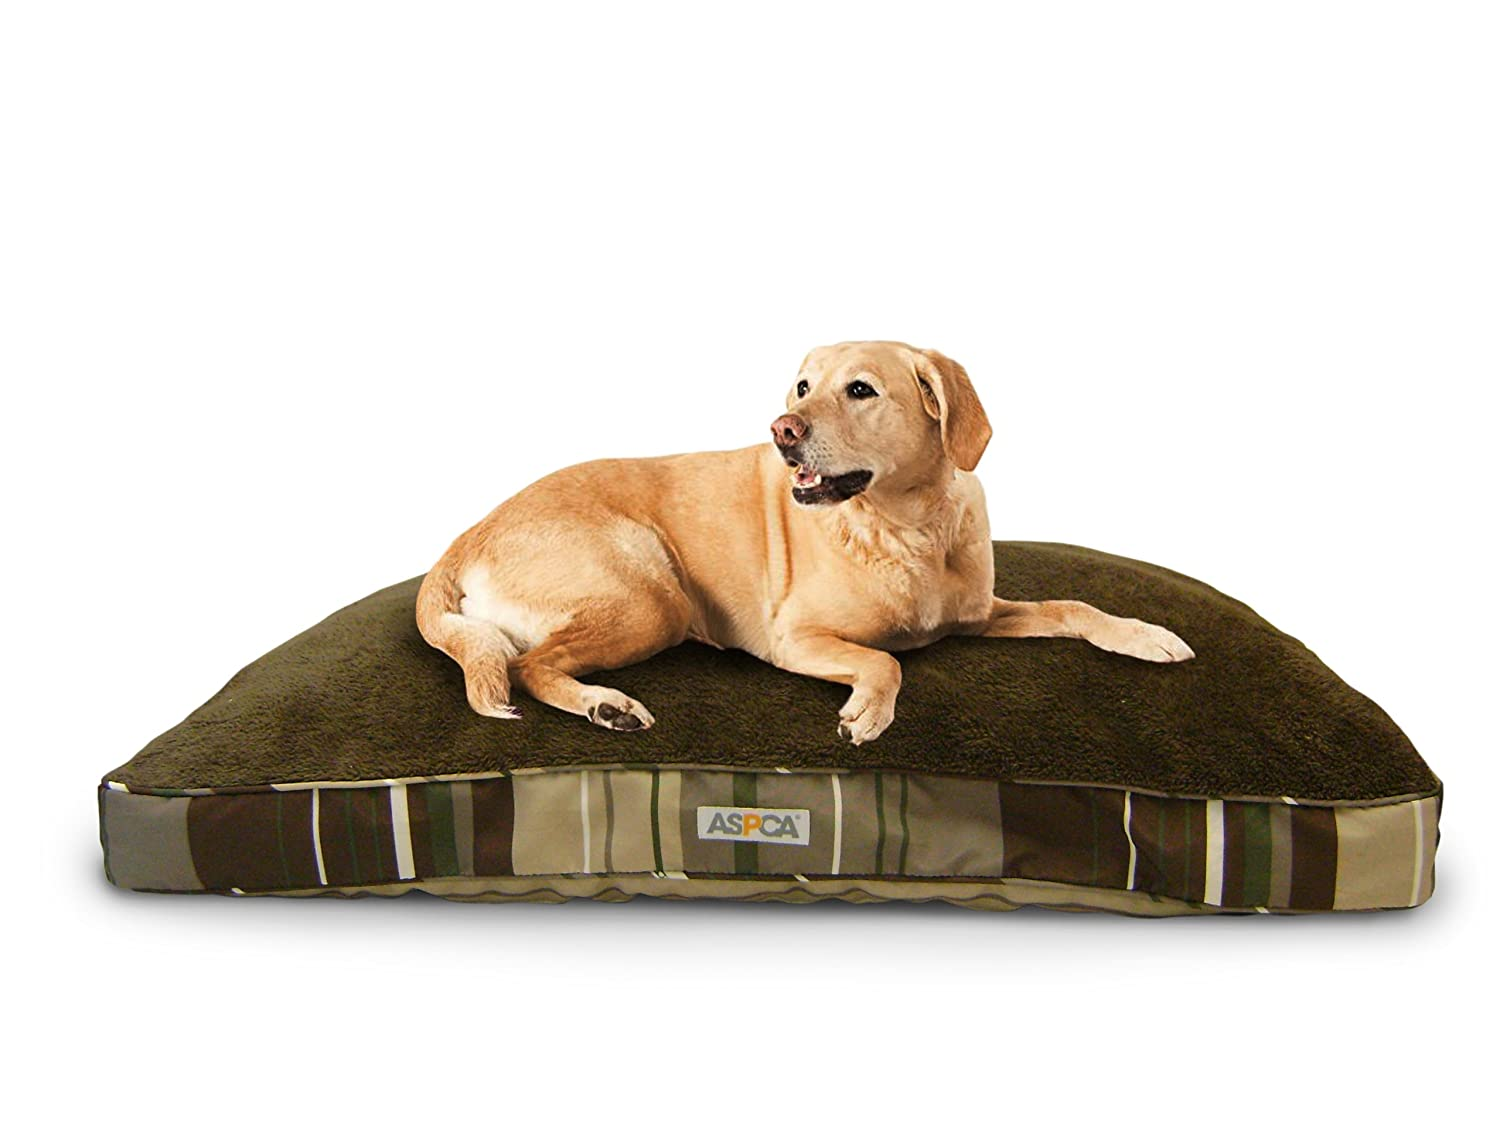 Aspca reversible striped gusseted pillow dog pet bed comfy for Amazon com pillow pets